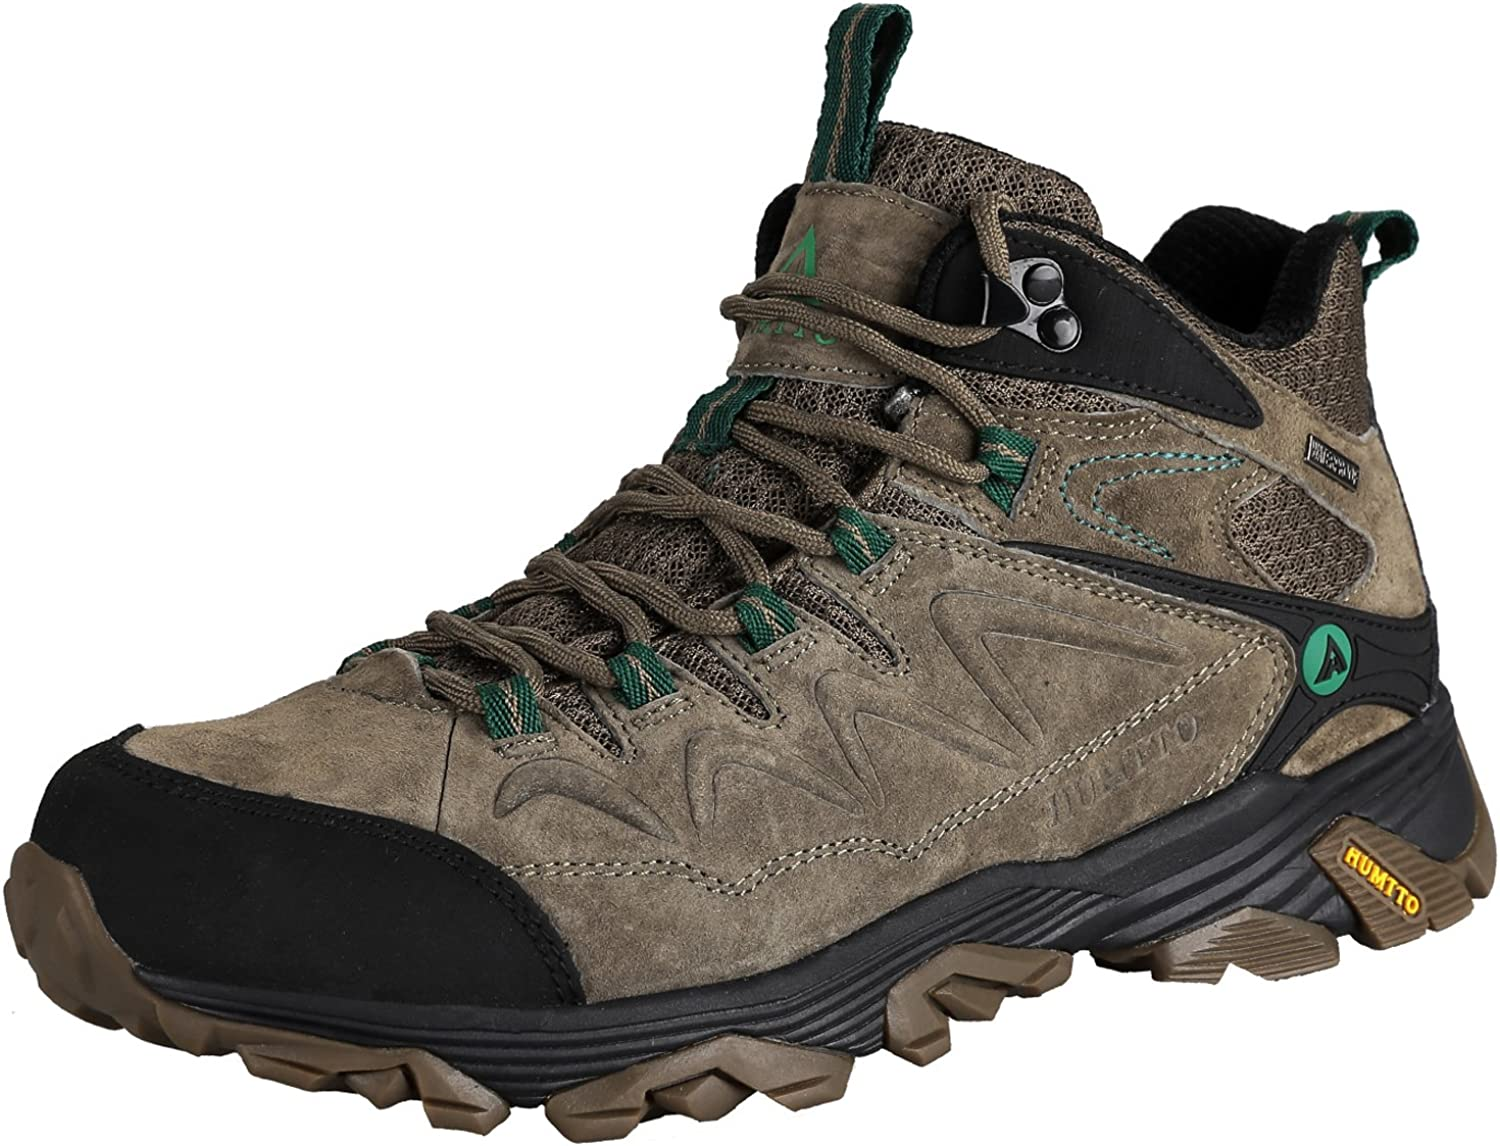 HUMTTO Outdoor Mens Lightweight Non-Slip Breathable High-Top Leather Trekking Hiking Boots